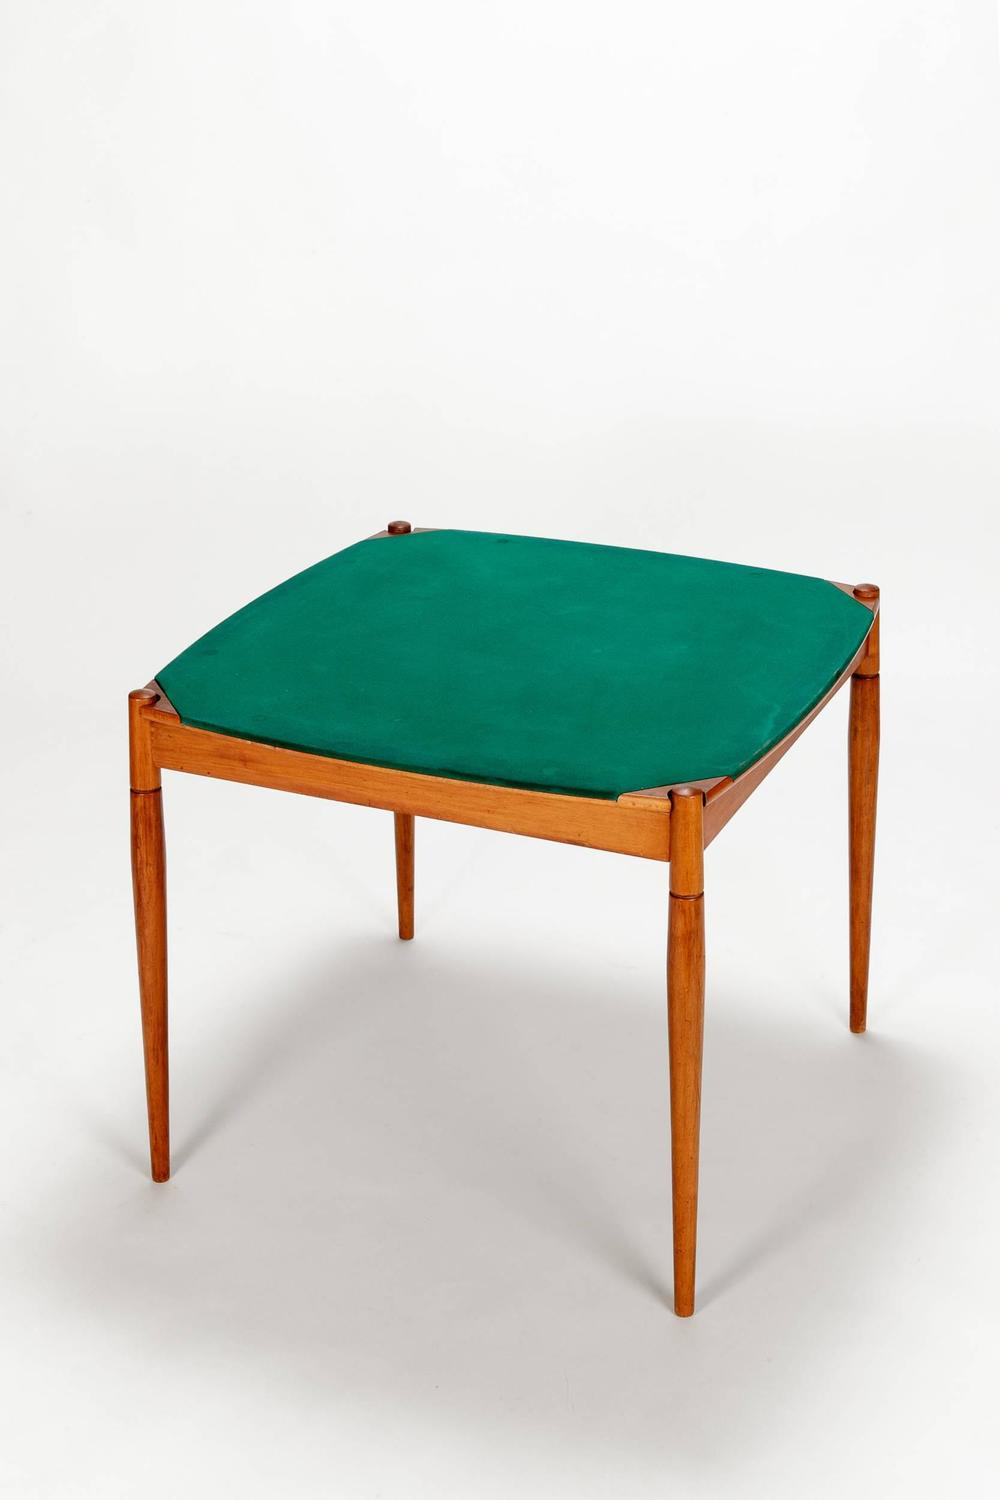 Italian Game Table By Gio Ponti For Fratelli Reguitti